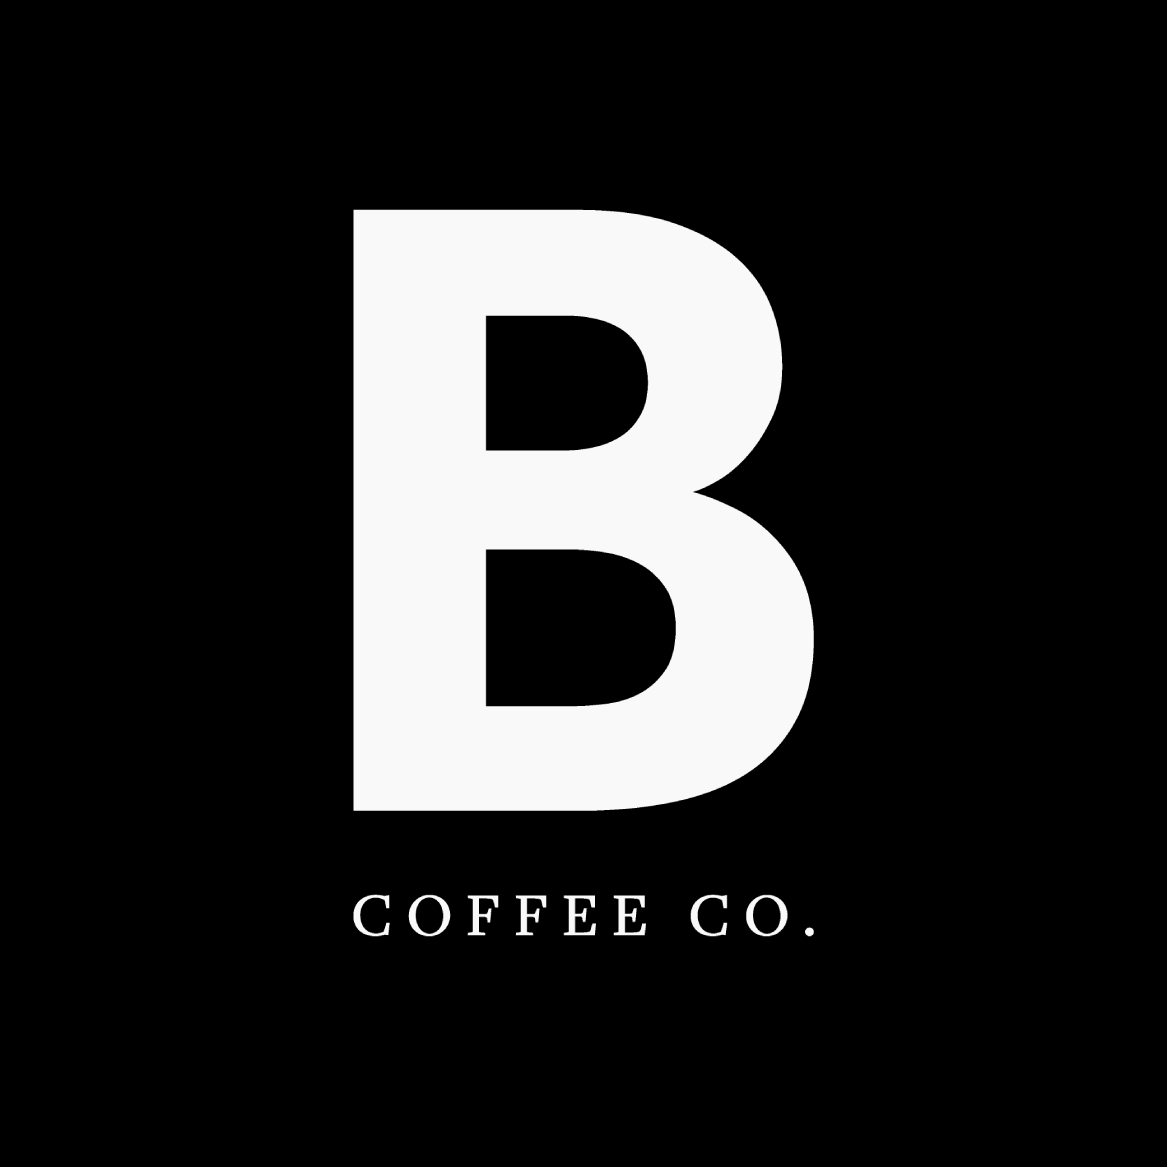 B Coffee Co